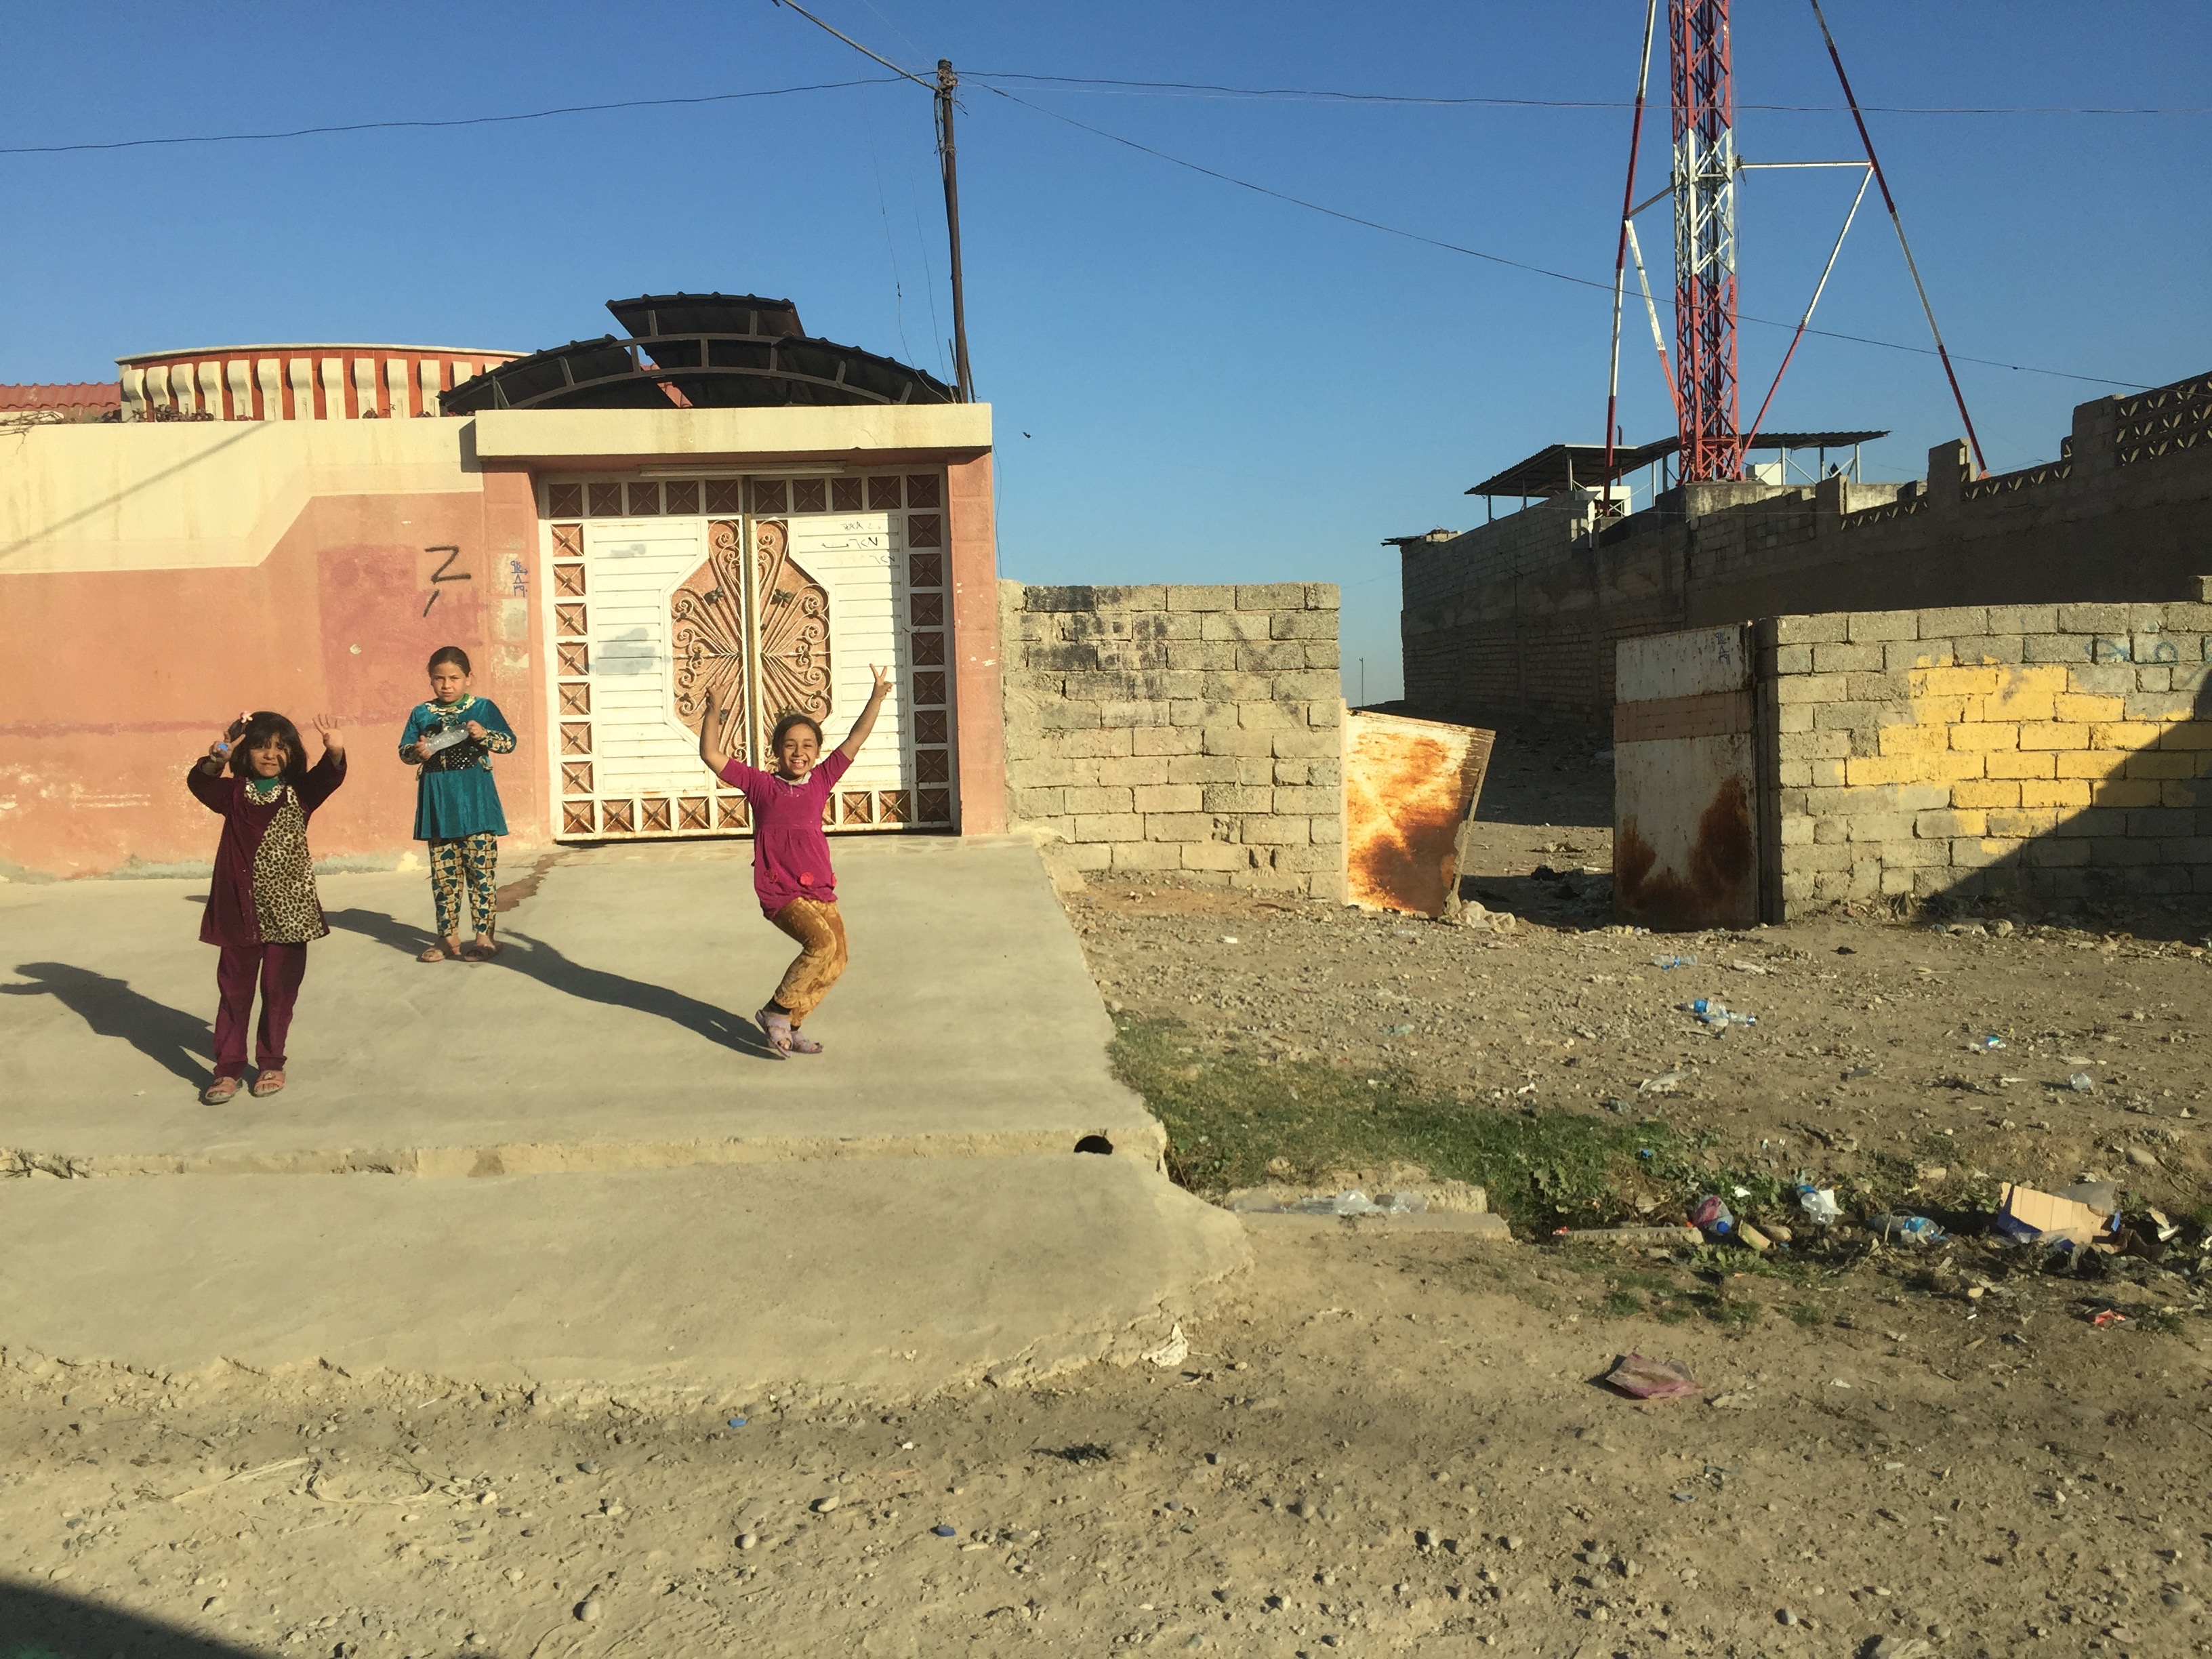 A group of kids play in the Mosul